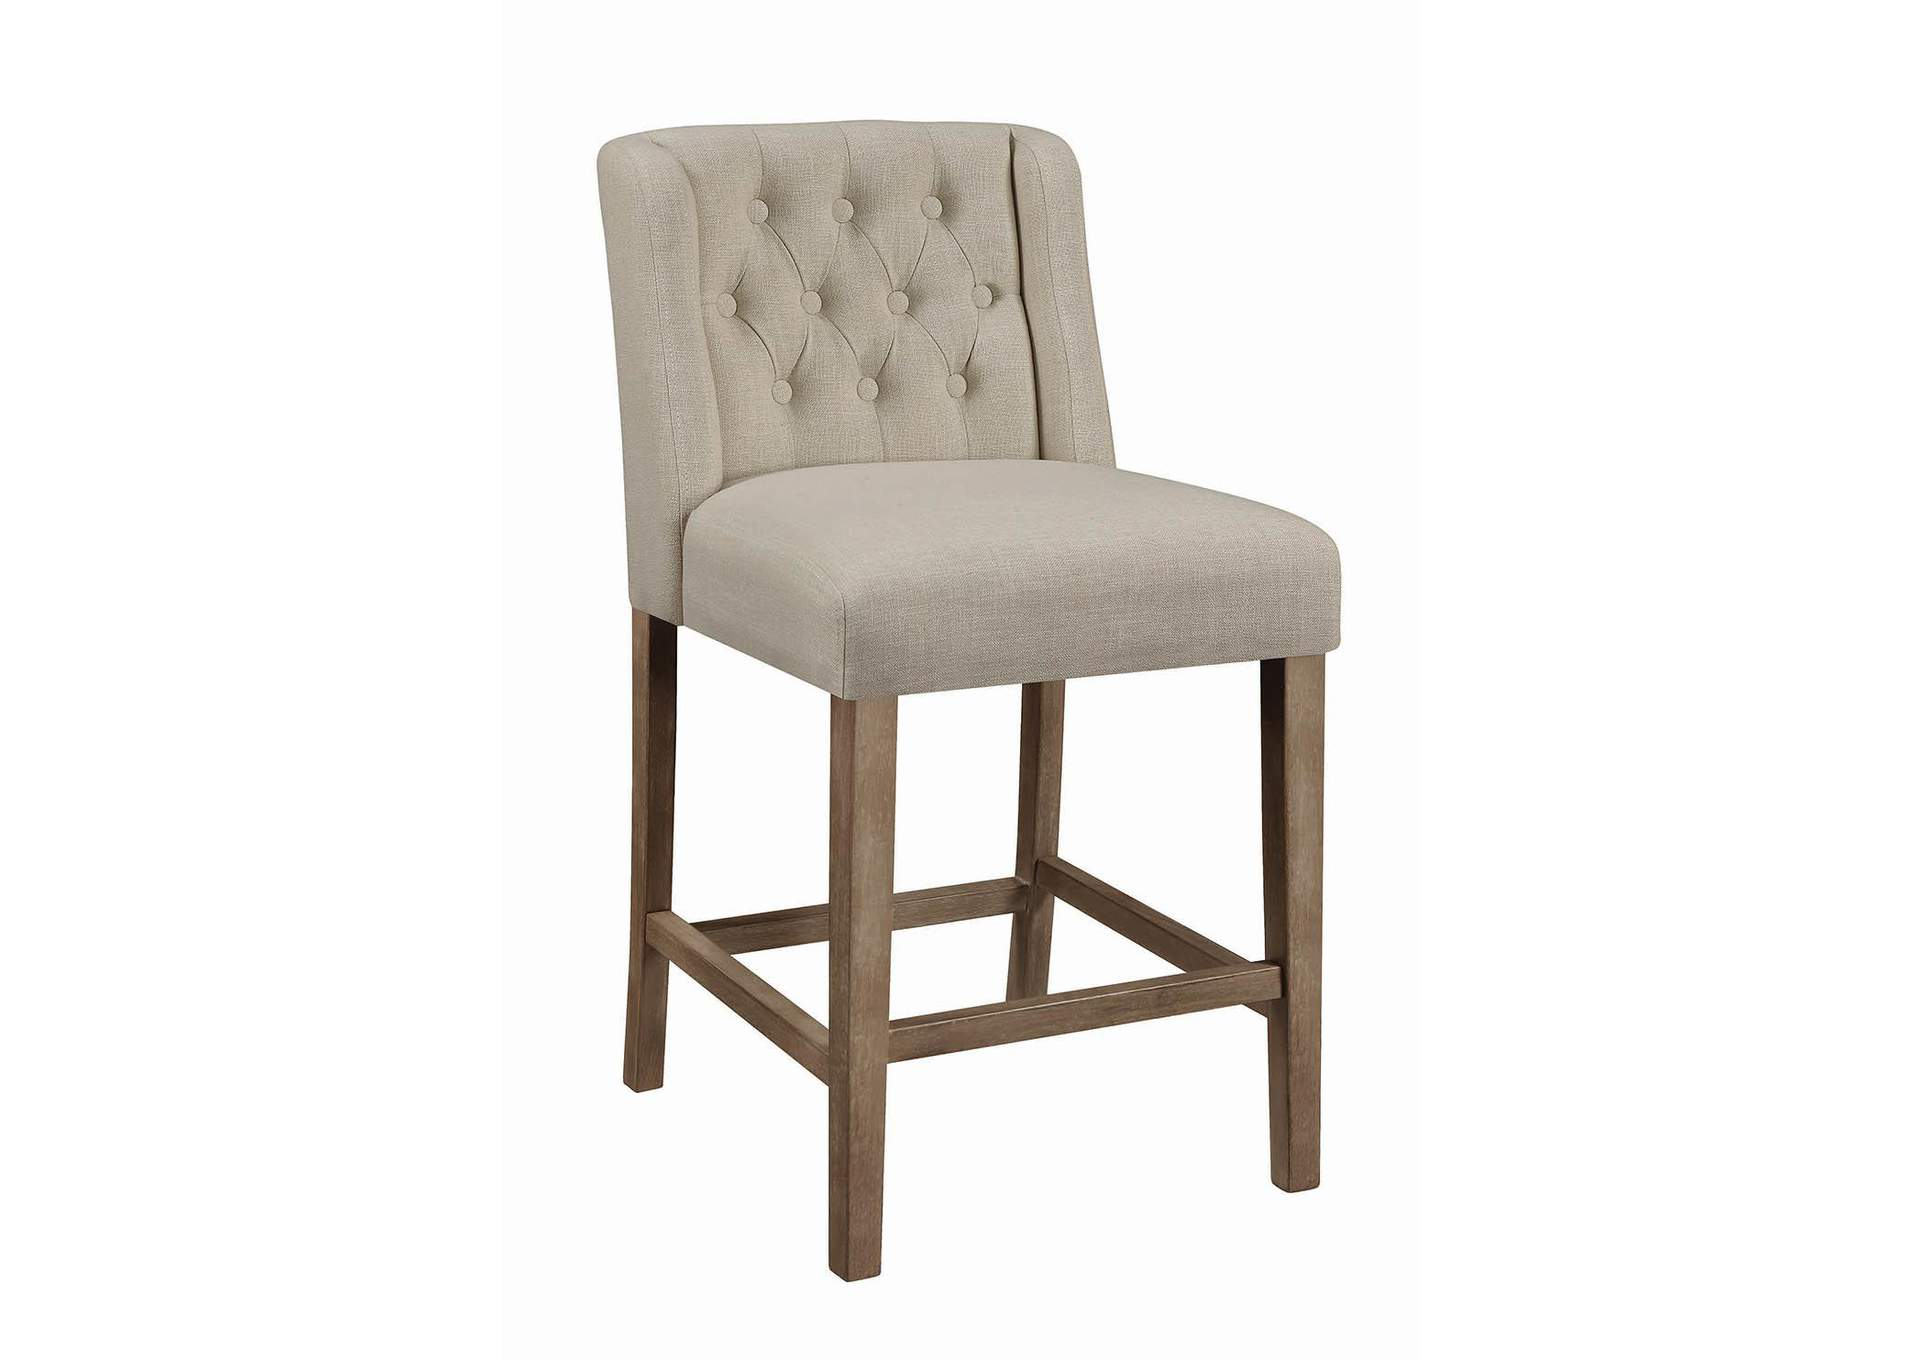 Beige & Pine Upholstered Counter Height Stool (2-Pack),Coaster Furniture